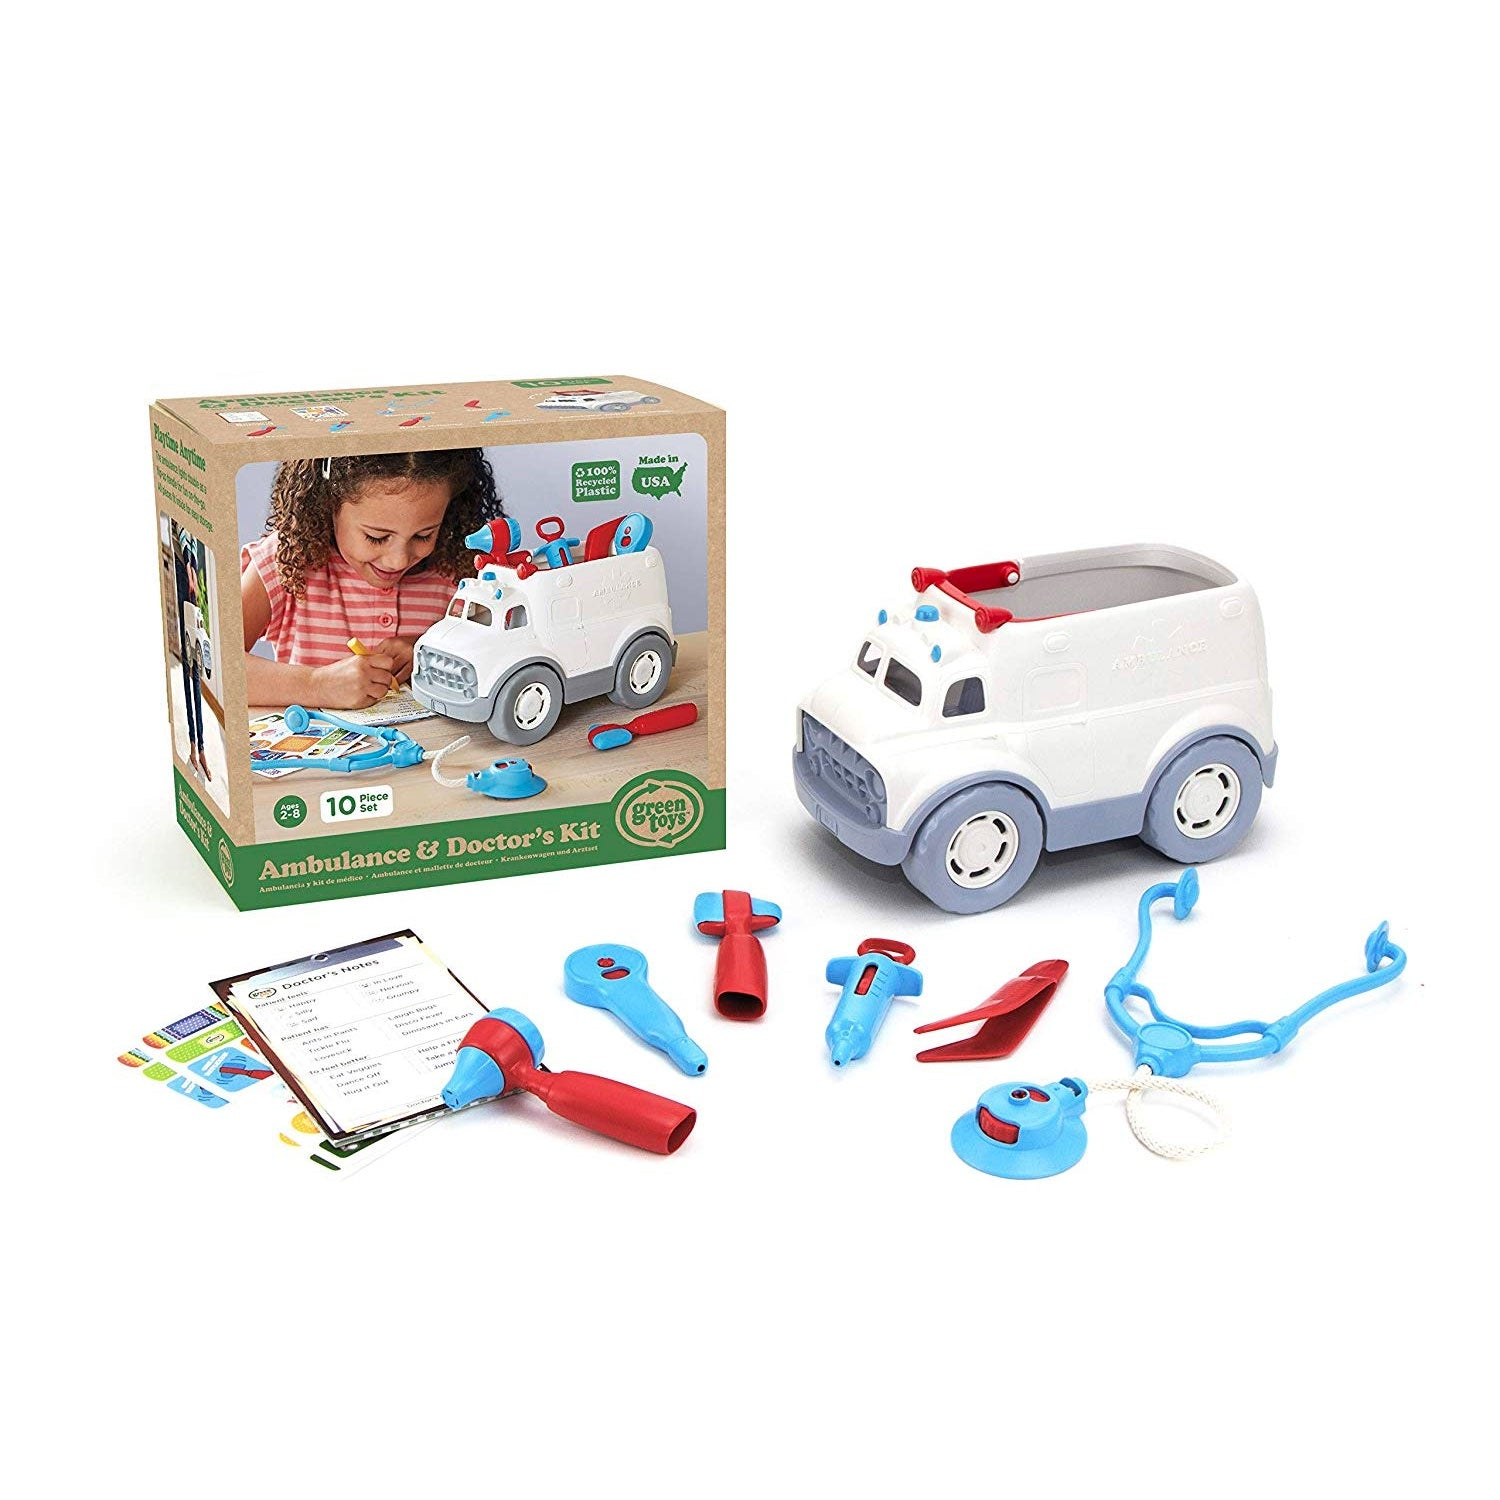 Green Toys | Ambulance & Doctor's Kit